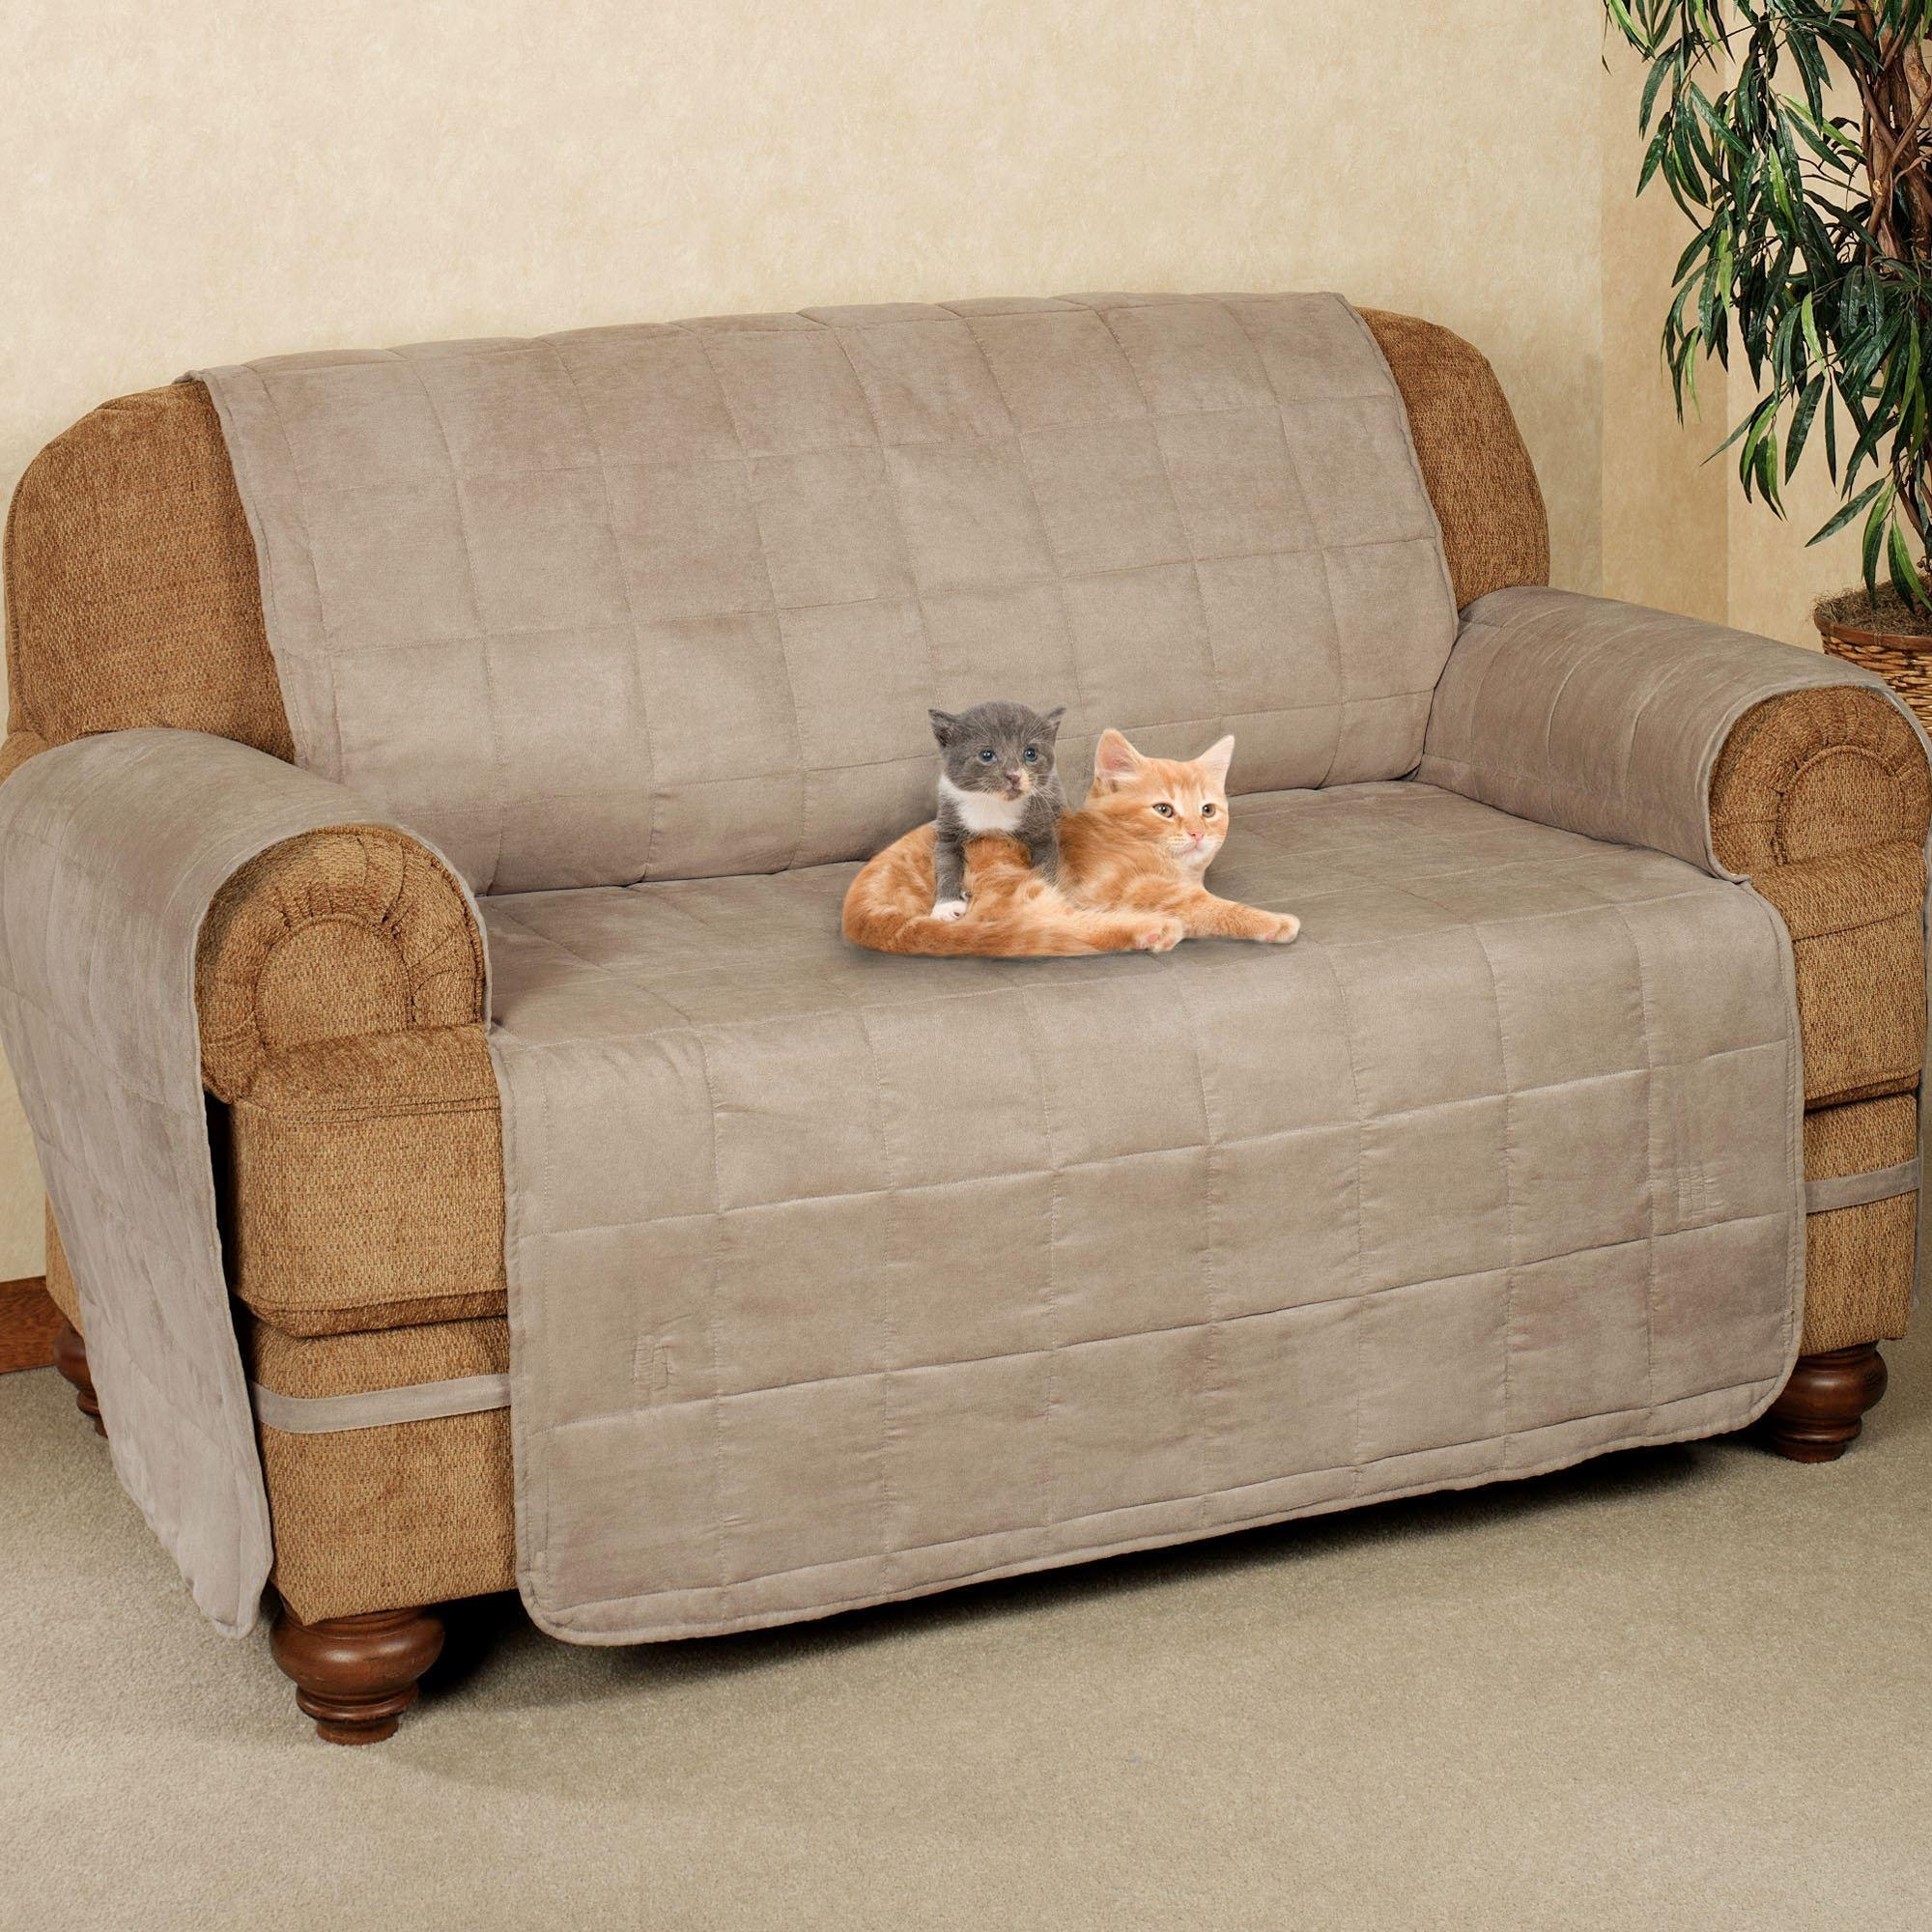 Oversized Sofa Pet Covers | Tehranmix Decoration In Oversized Sofa Chairs (View 18 of 20)